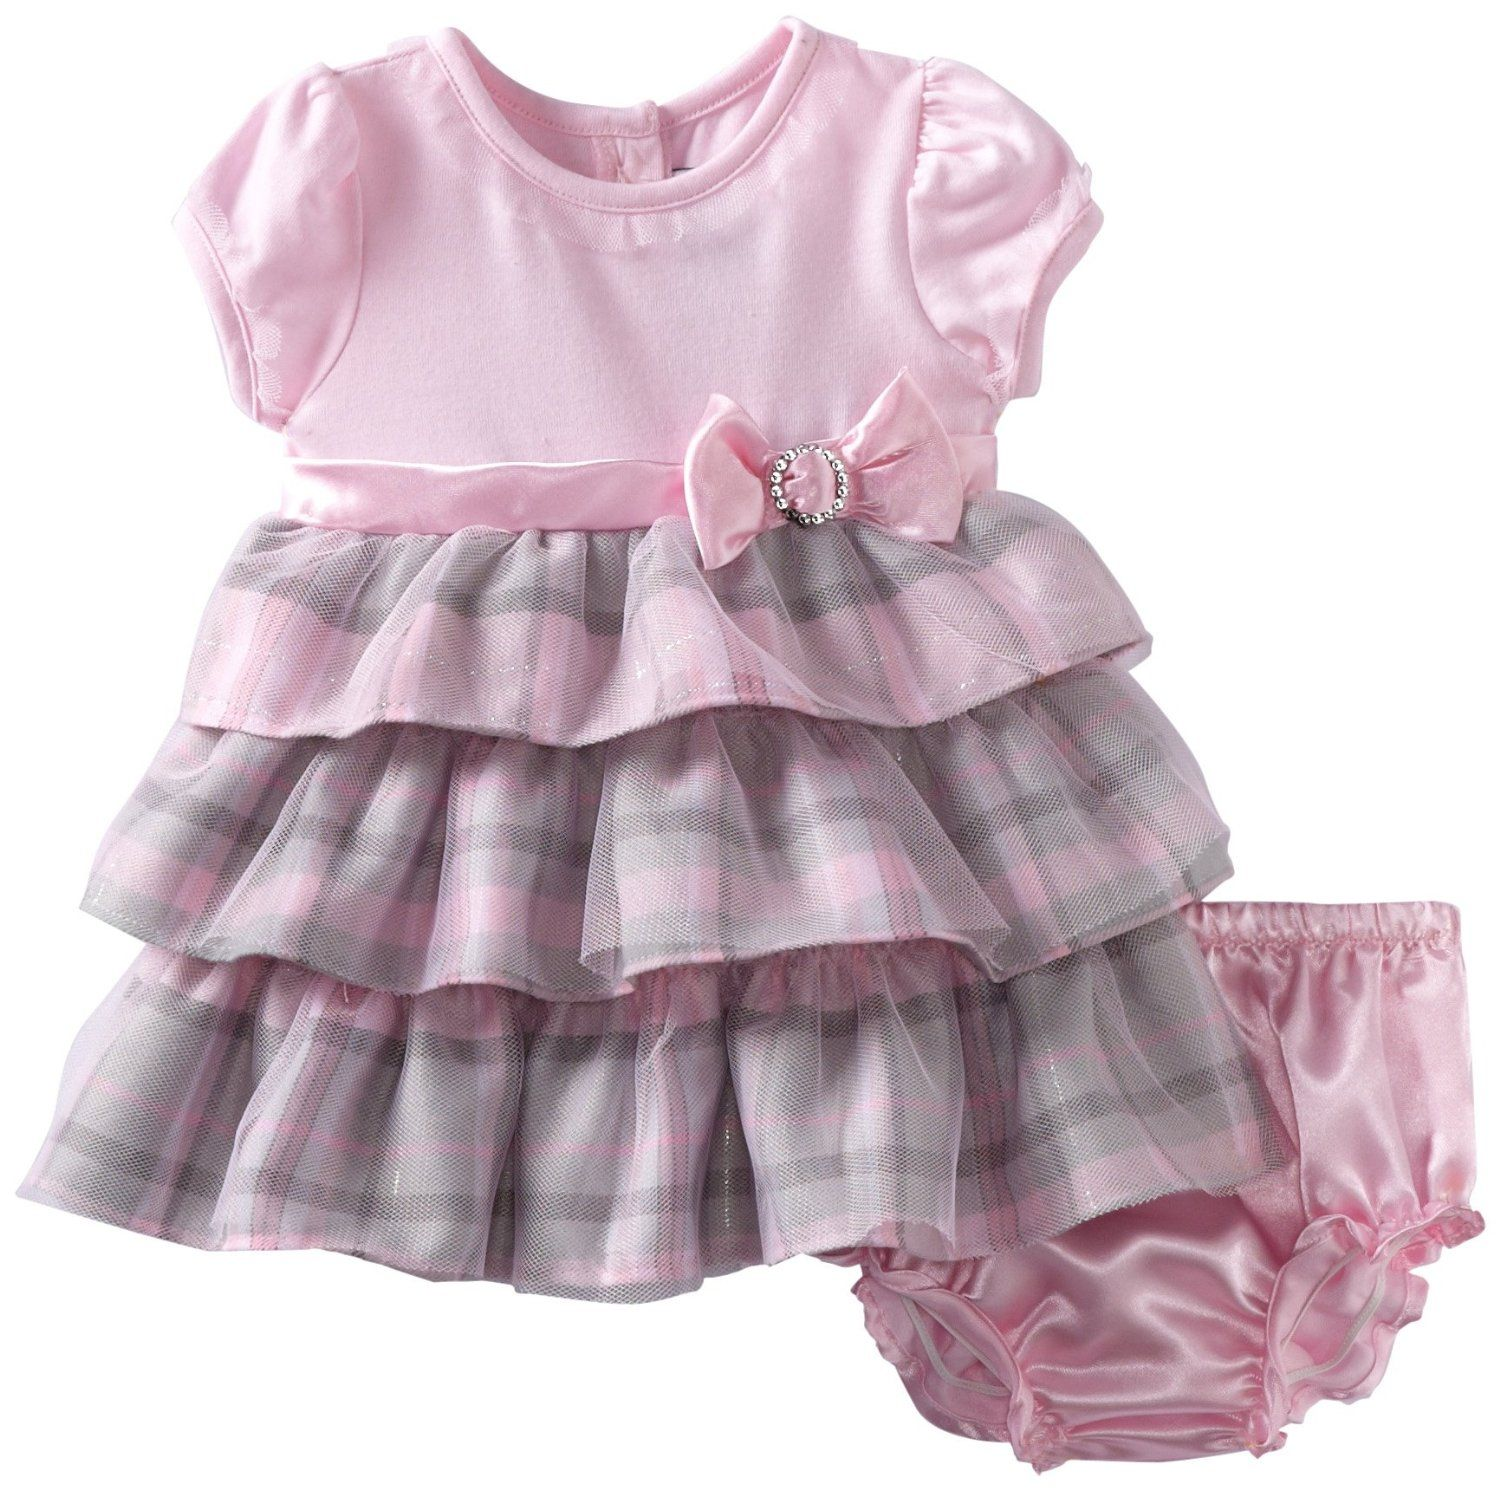 Youngland Baby-Girls Newborn Mesh Overlay Dress | My M&M's ...